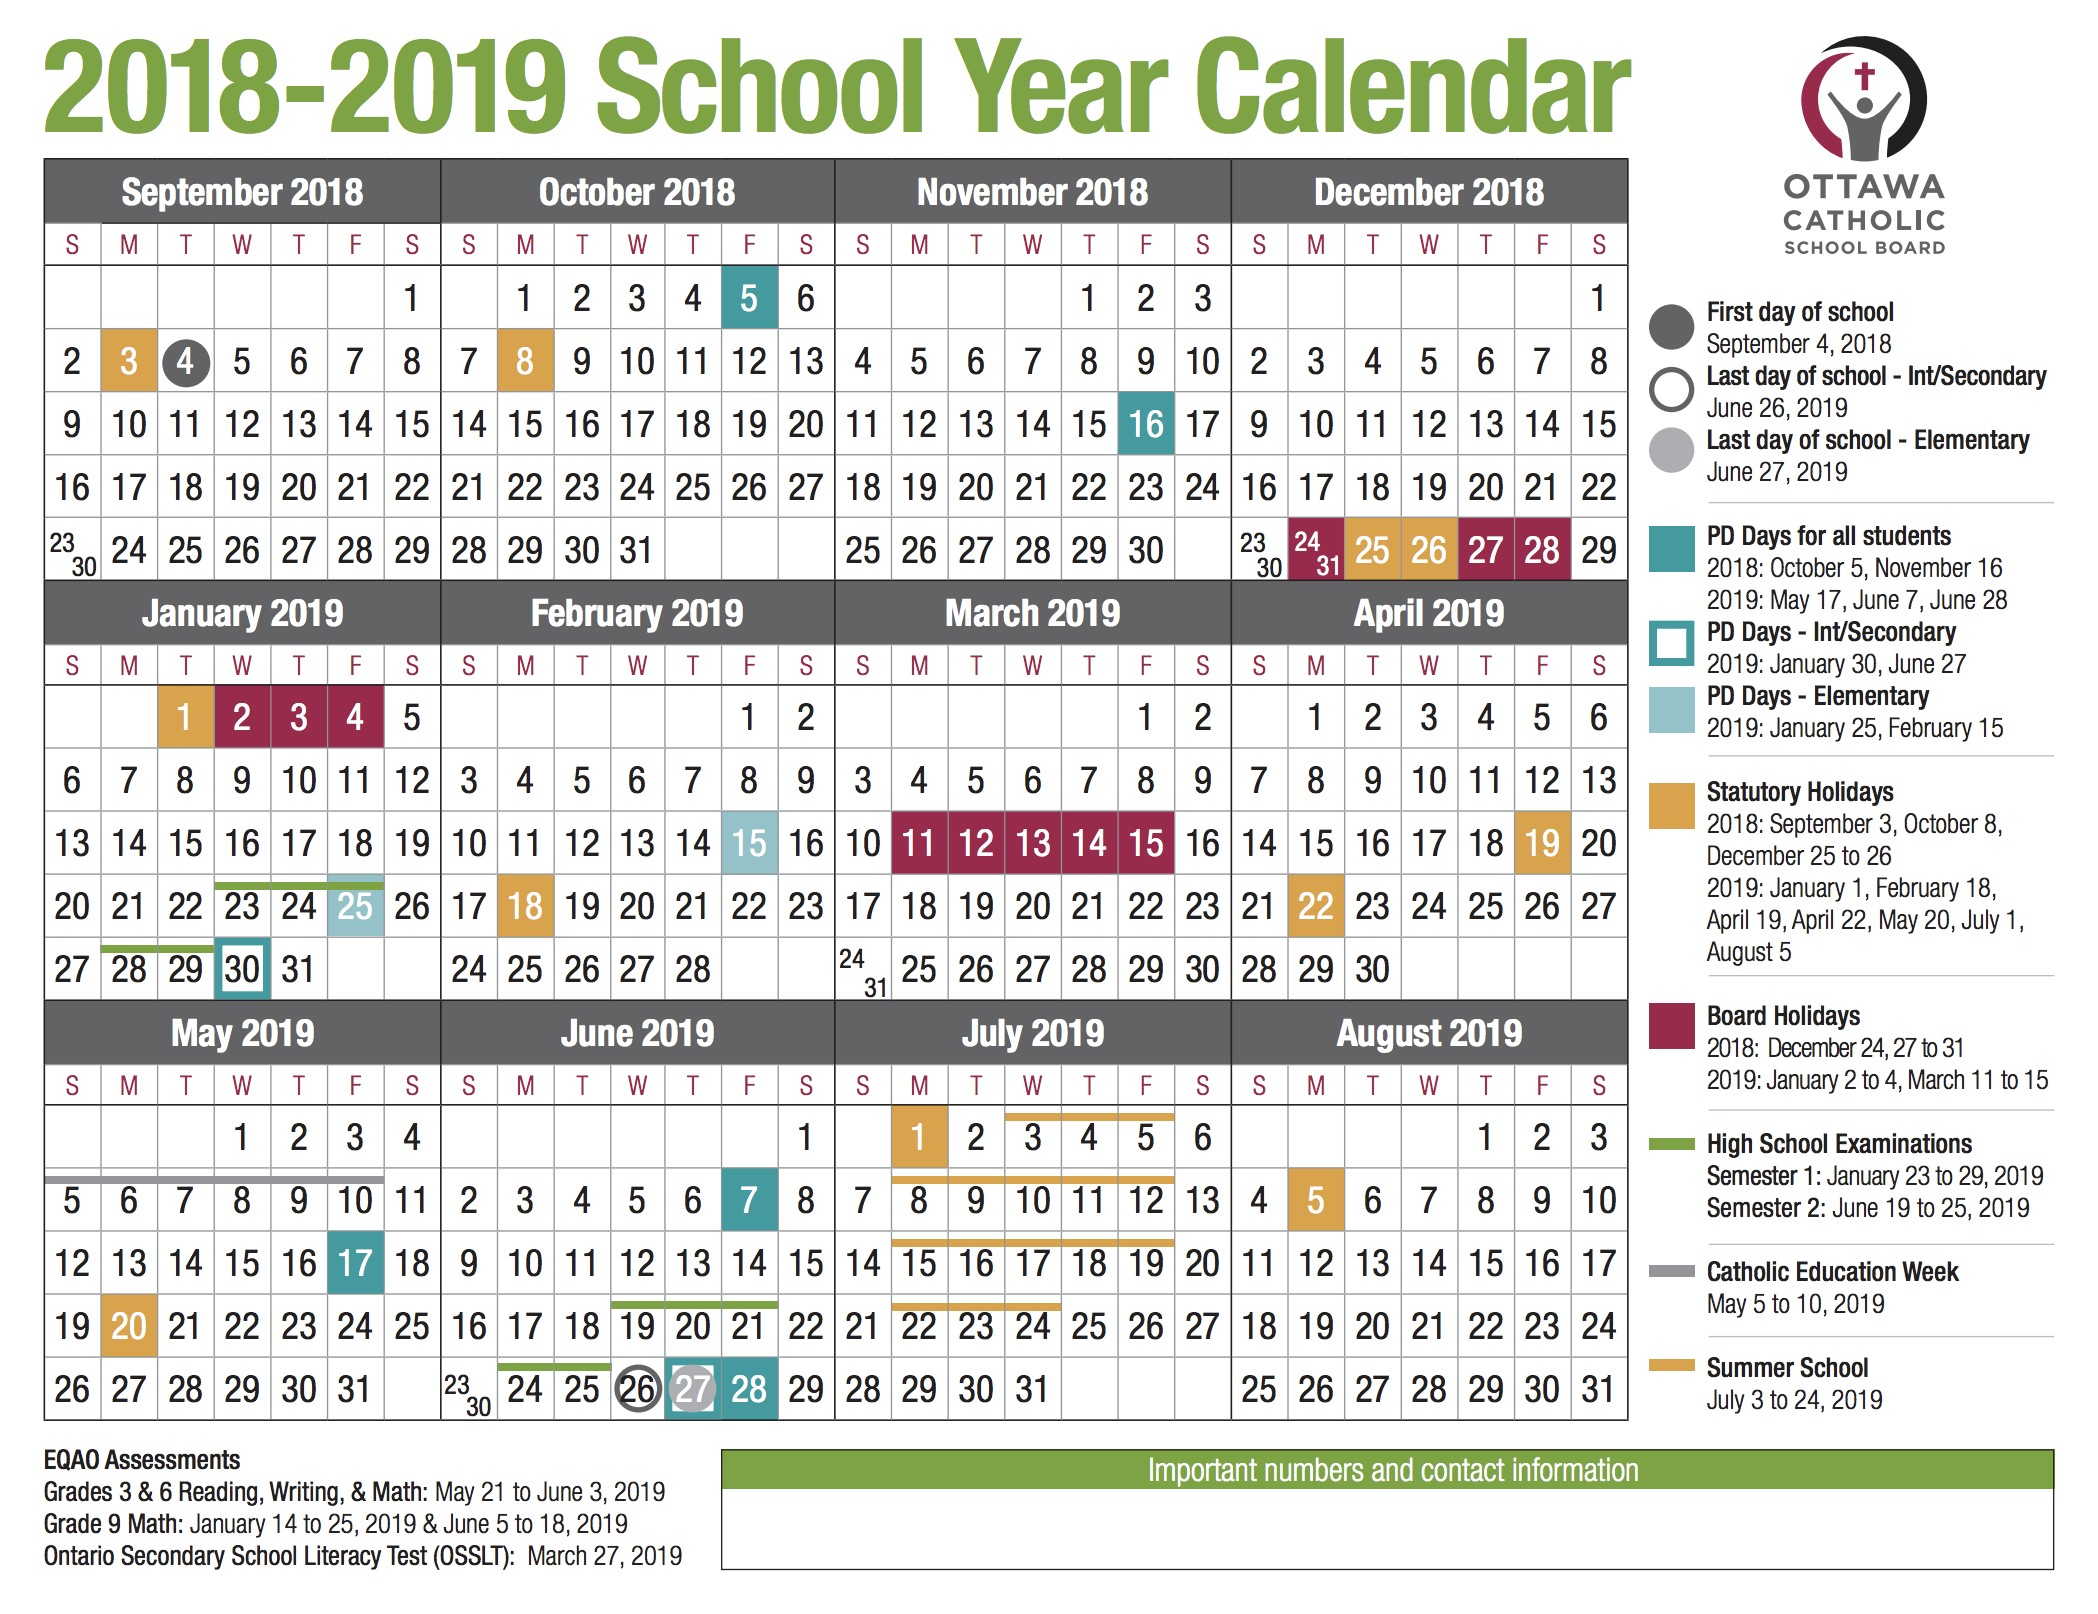 March 2019 Calendar Landscape Más Recientes School Year Calendar From the Ocsb Of March 2019 Calendar Landscape Recientes 2018 Hubble Space Telescope Advent Calendar the atlantic